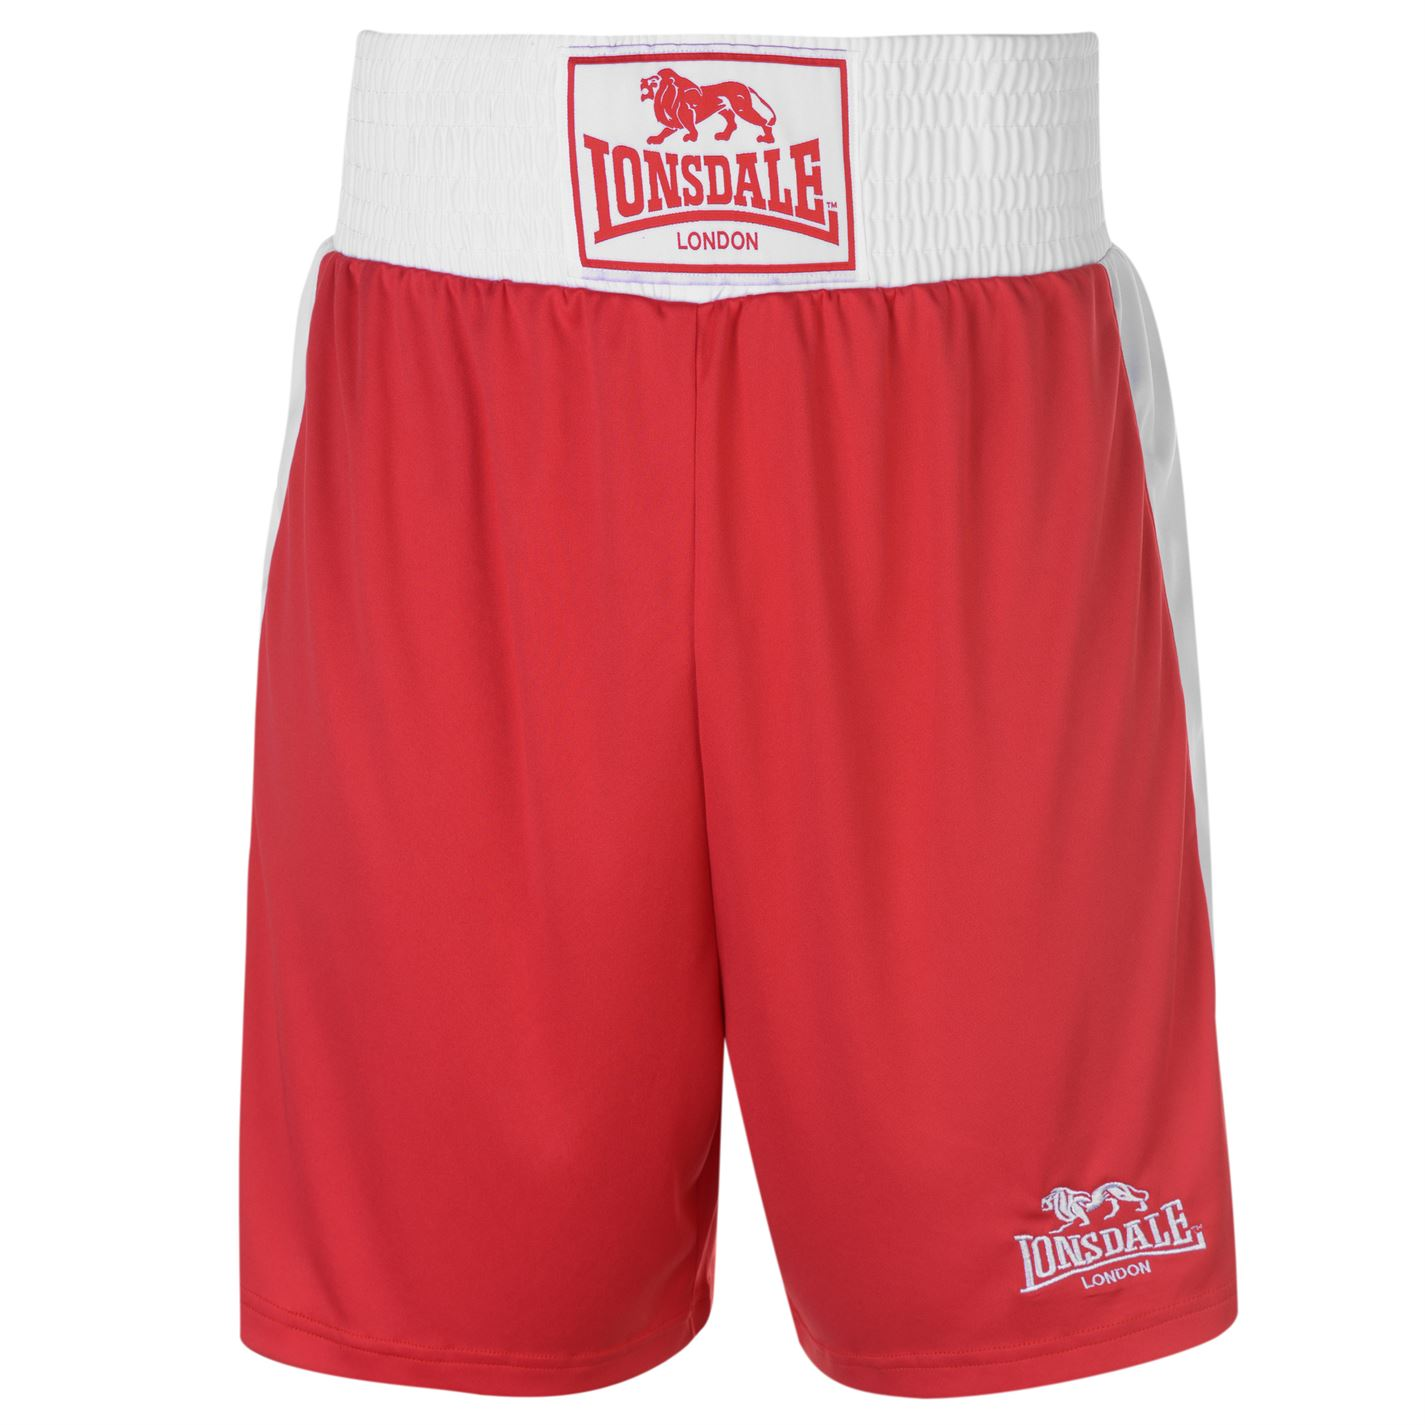 Lonsdale Box Short Snr Red/White